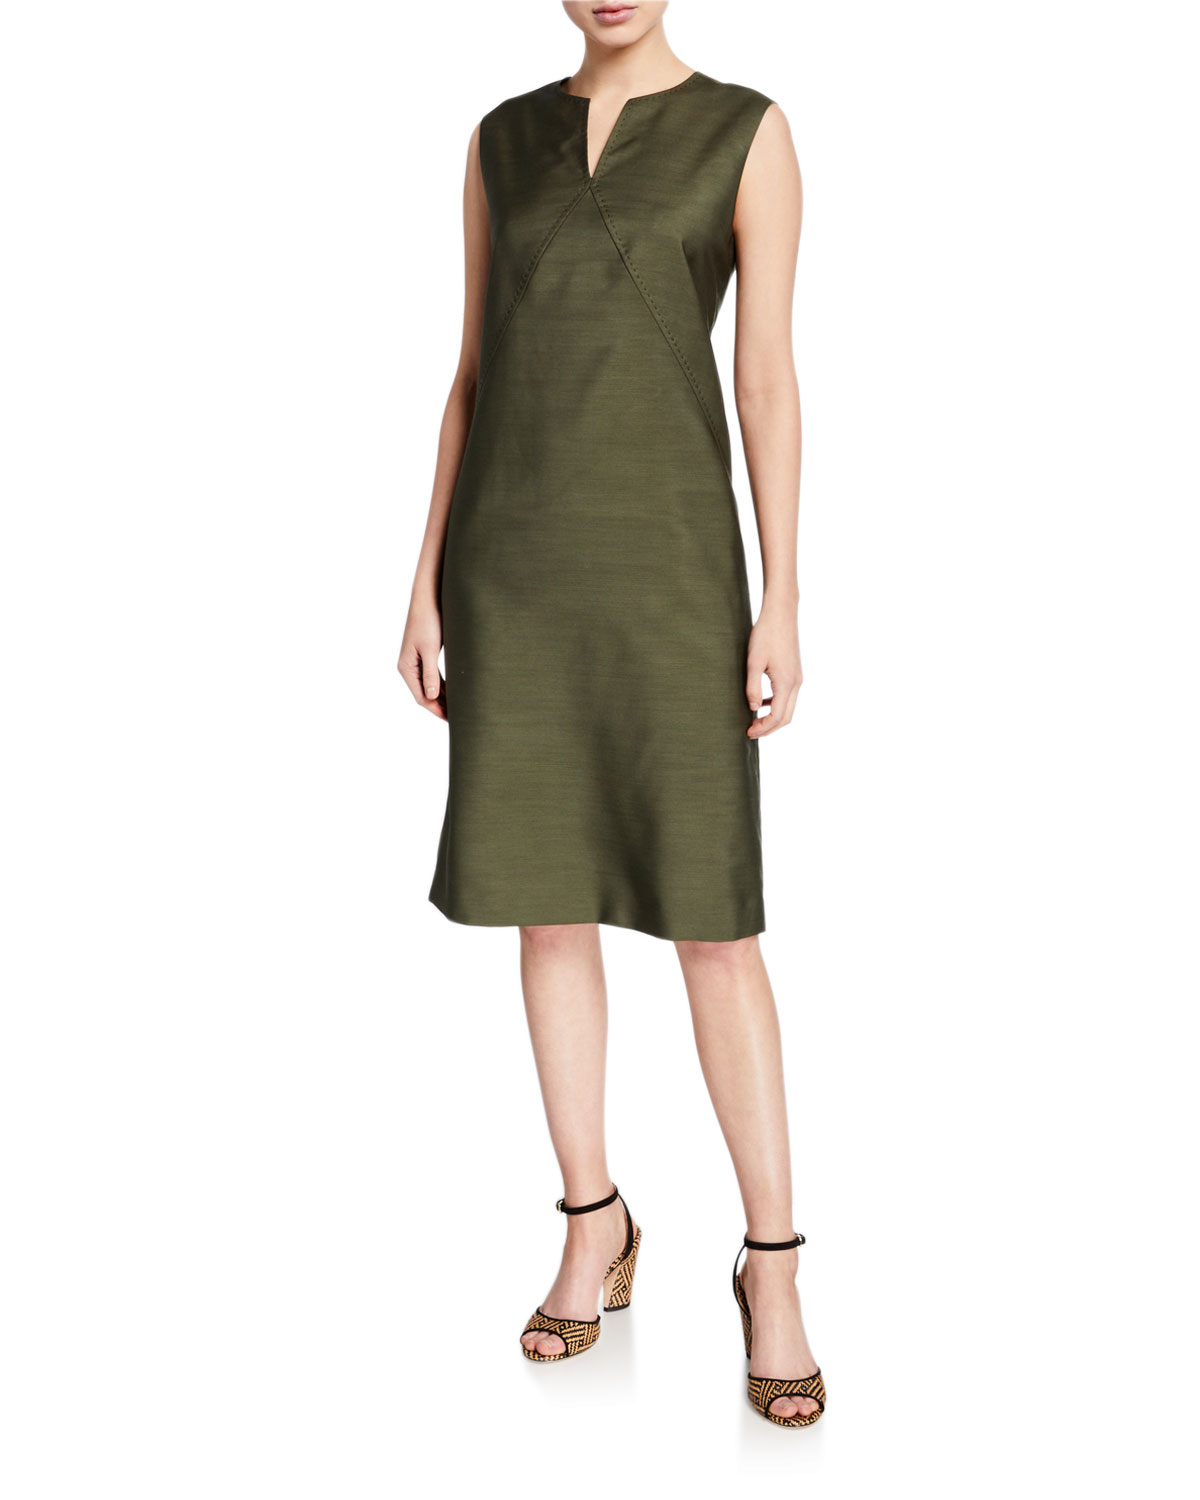 Millie Gateway Cloth Sleeveless Dress by Lafayette 148 New York